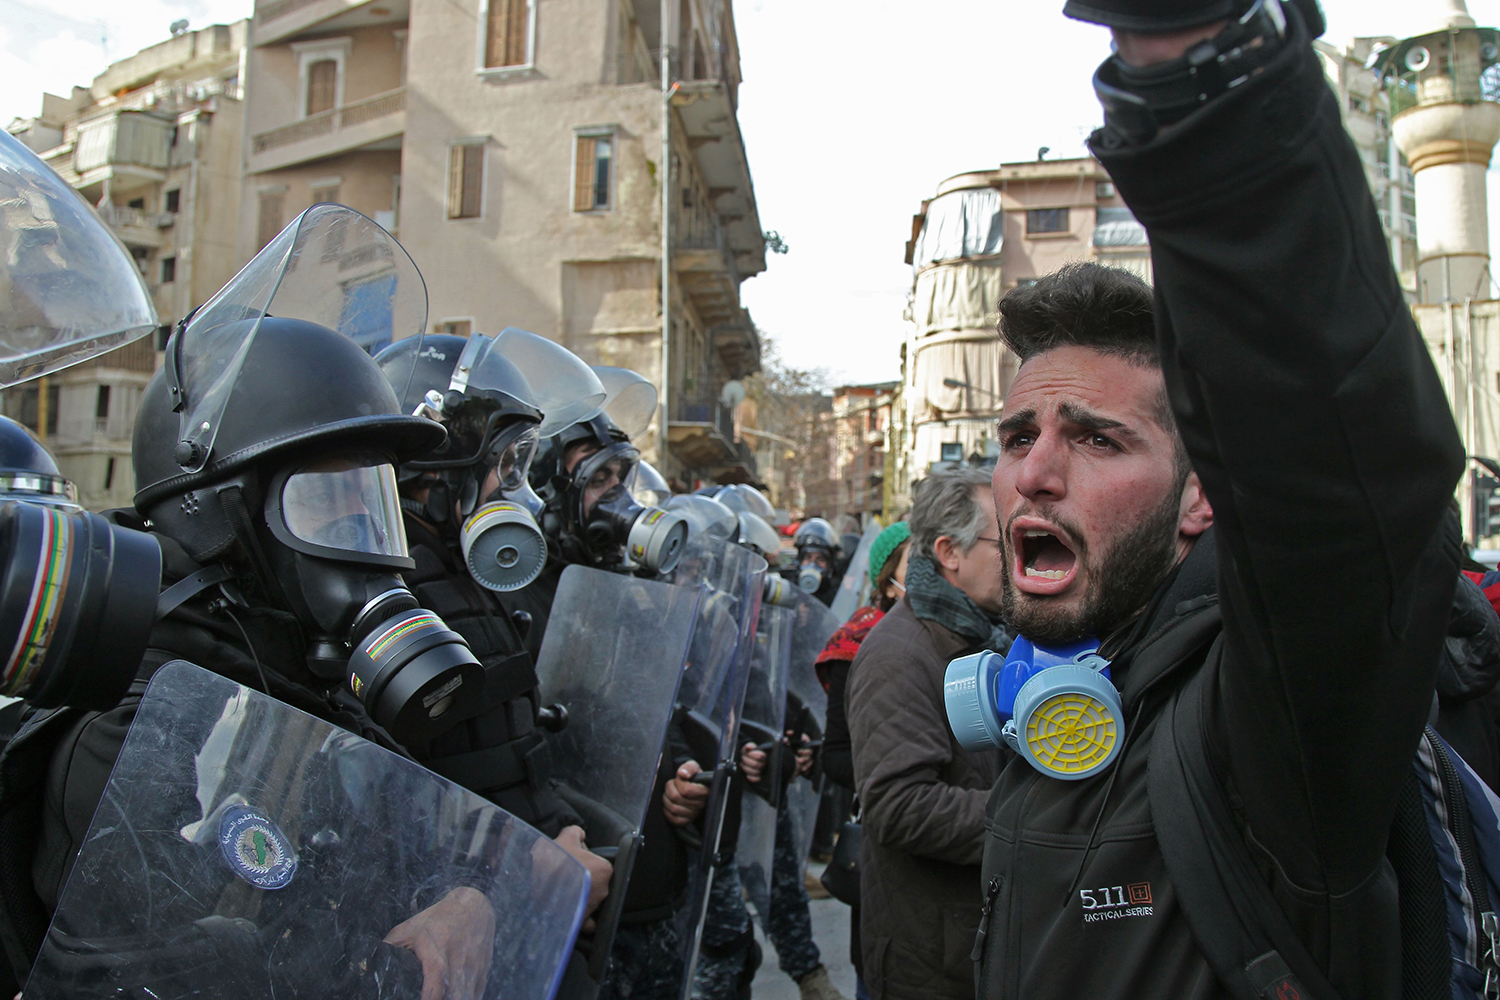 Lebanese protesters chant slogans during clashes with security forces on Feb. 11 as they gather on in the heart of Beirut to stop a confidence vote for a new government, which they say fails to address their demands and cannot rescue the ailing country.  IBRAHIM AMRO/AFP via Getty Images